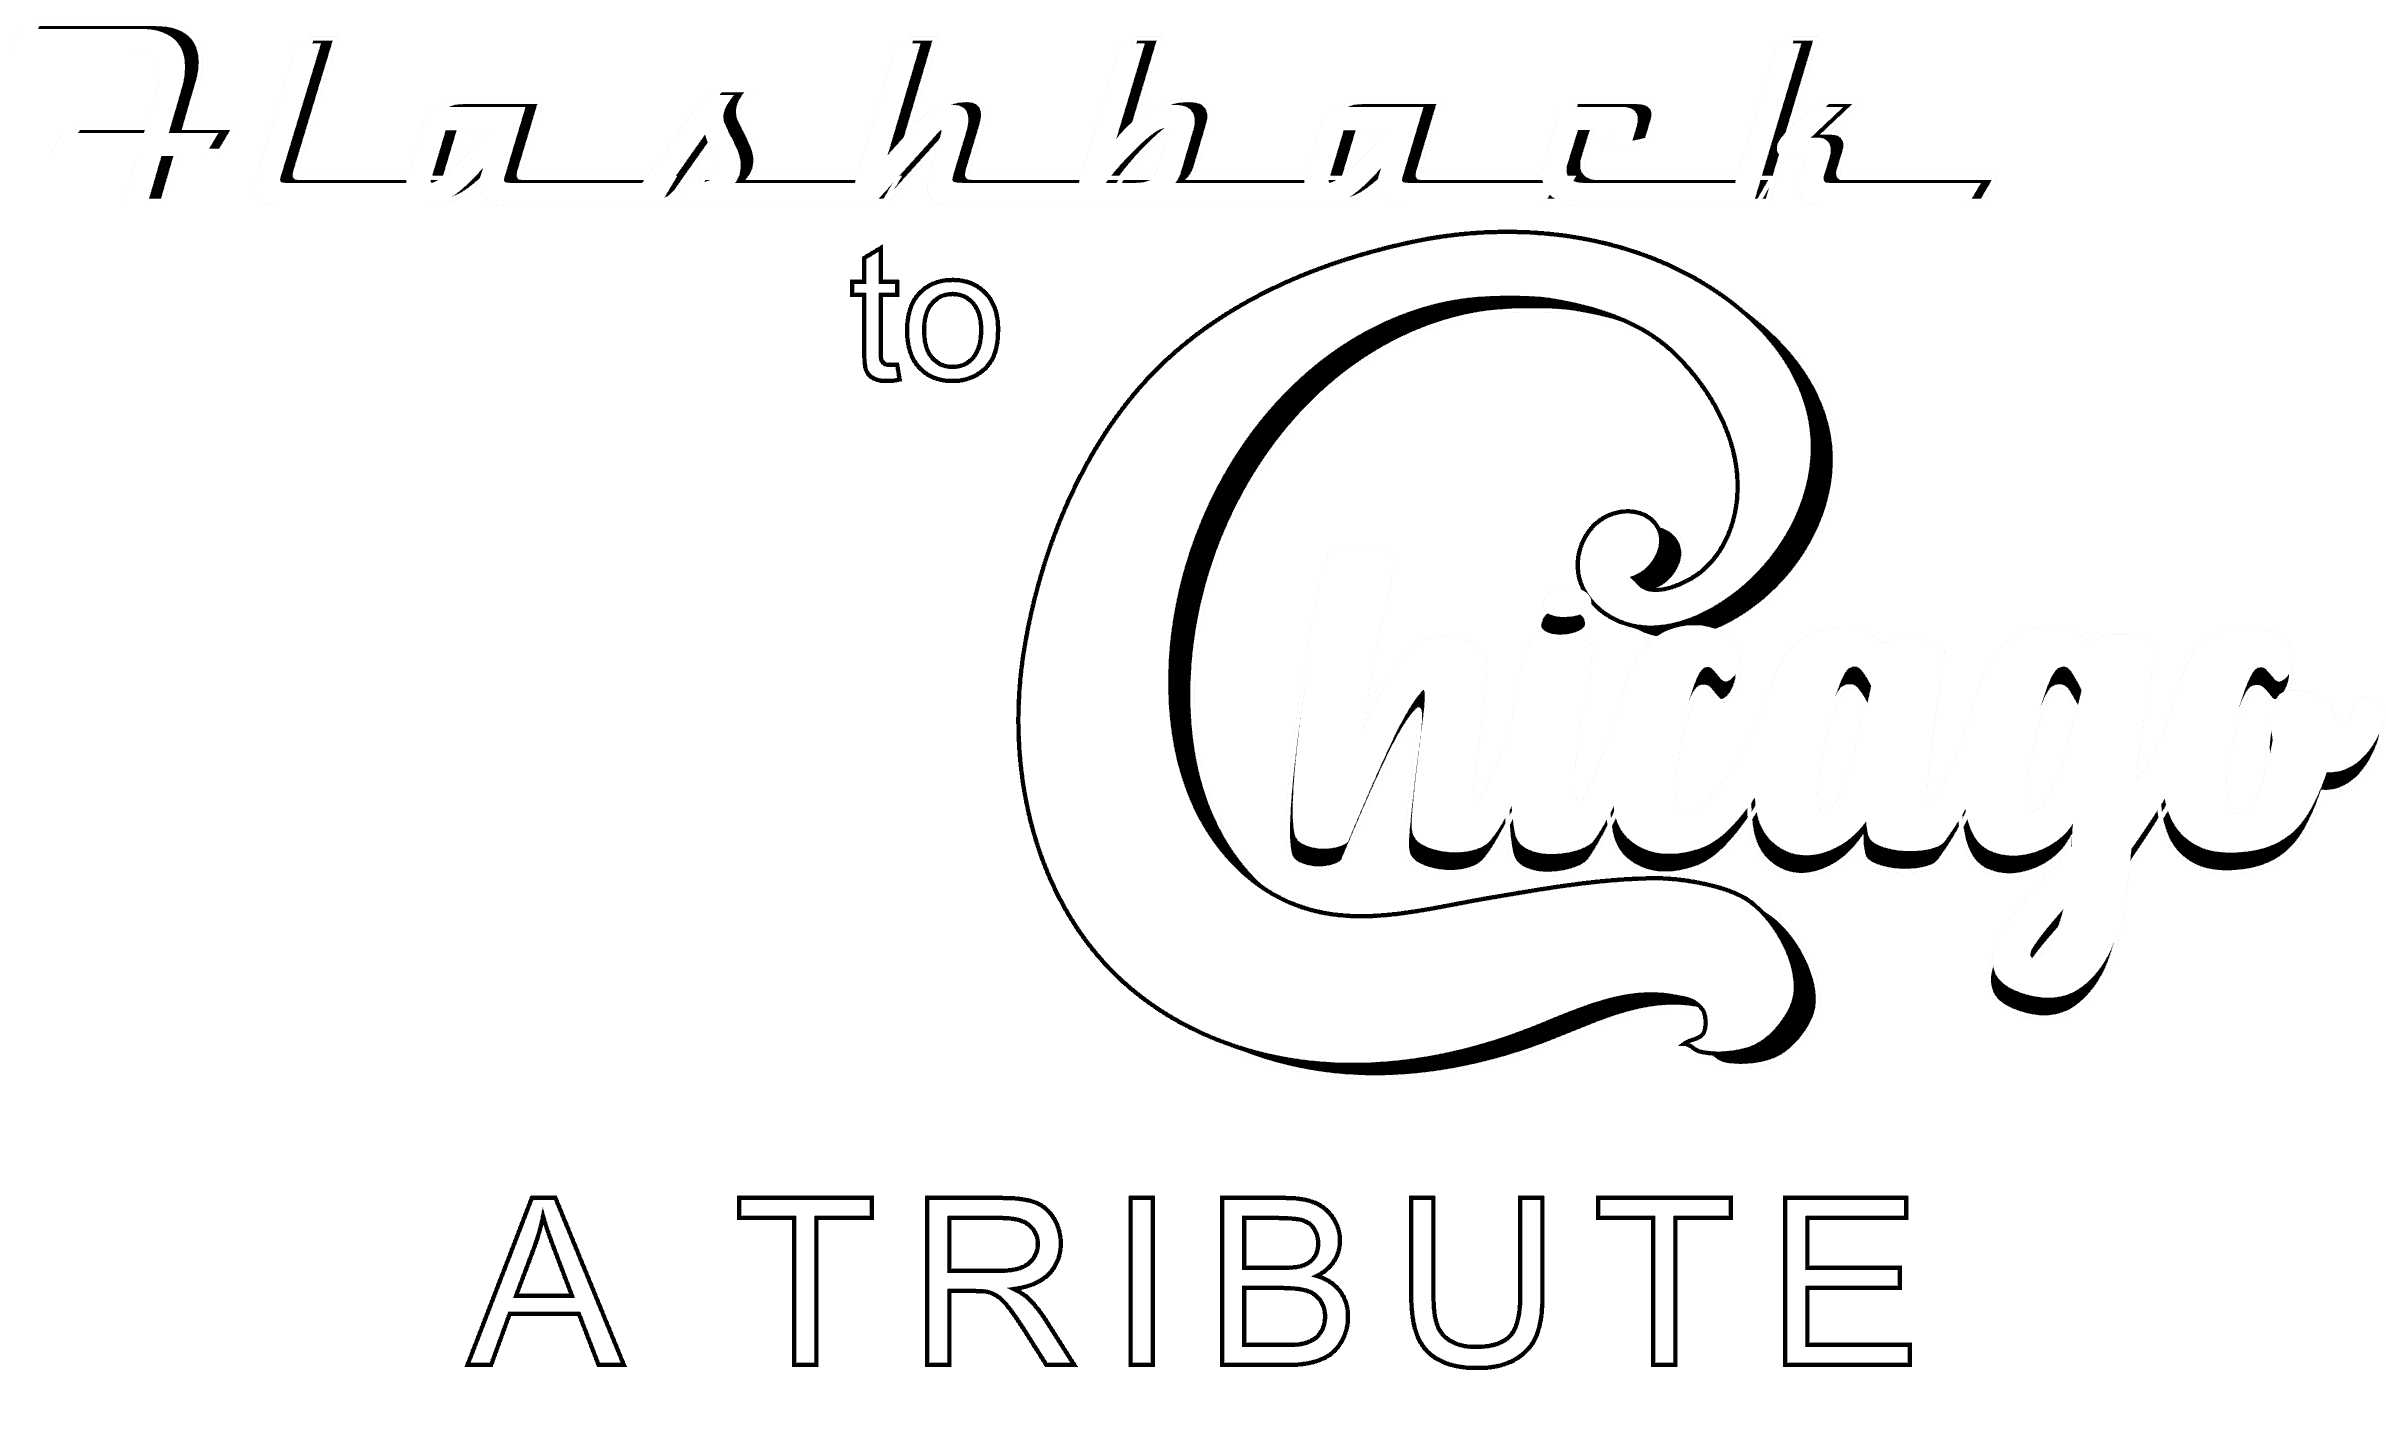 FLASHBACK TO CHICAGO LOGO